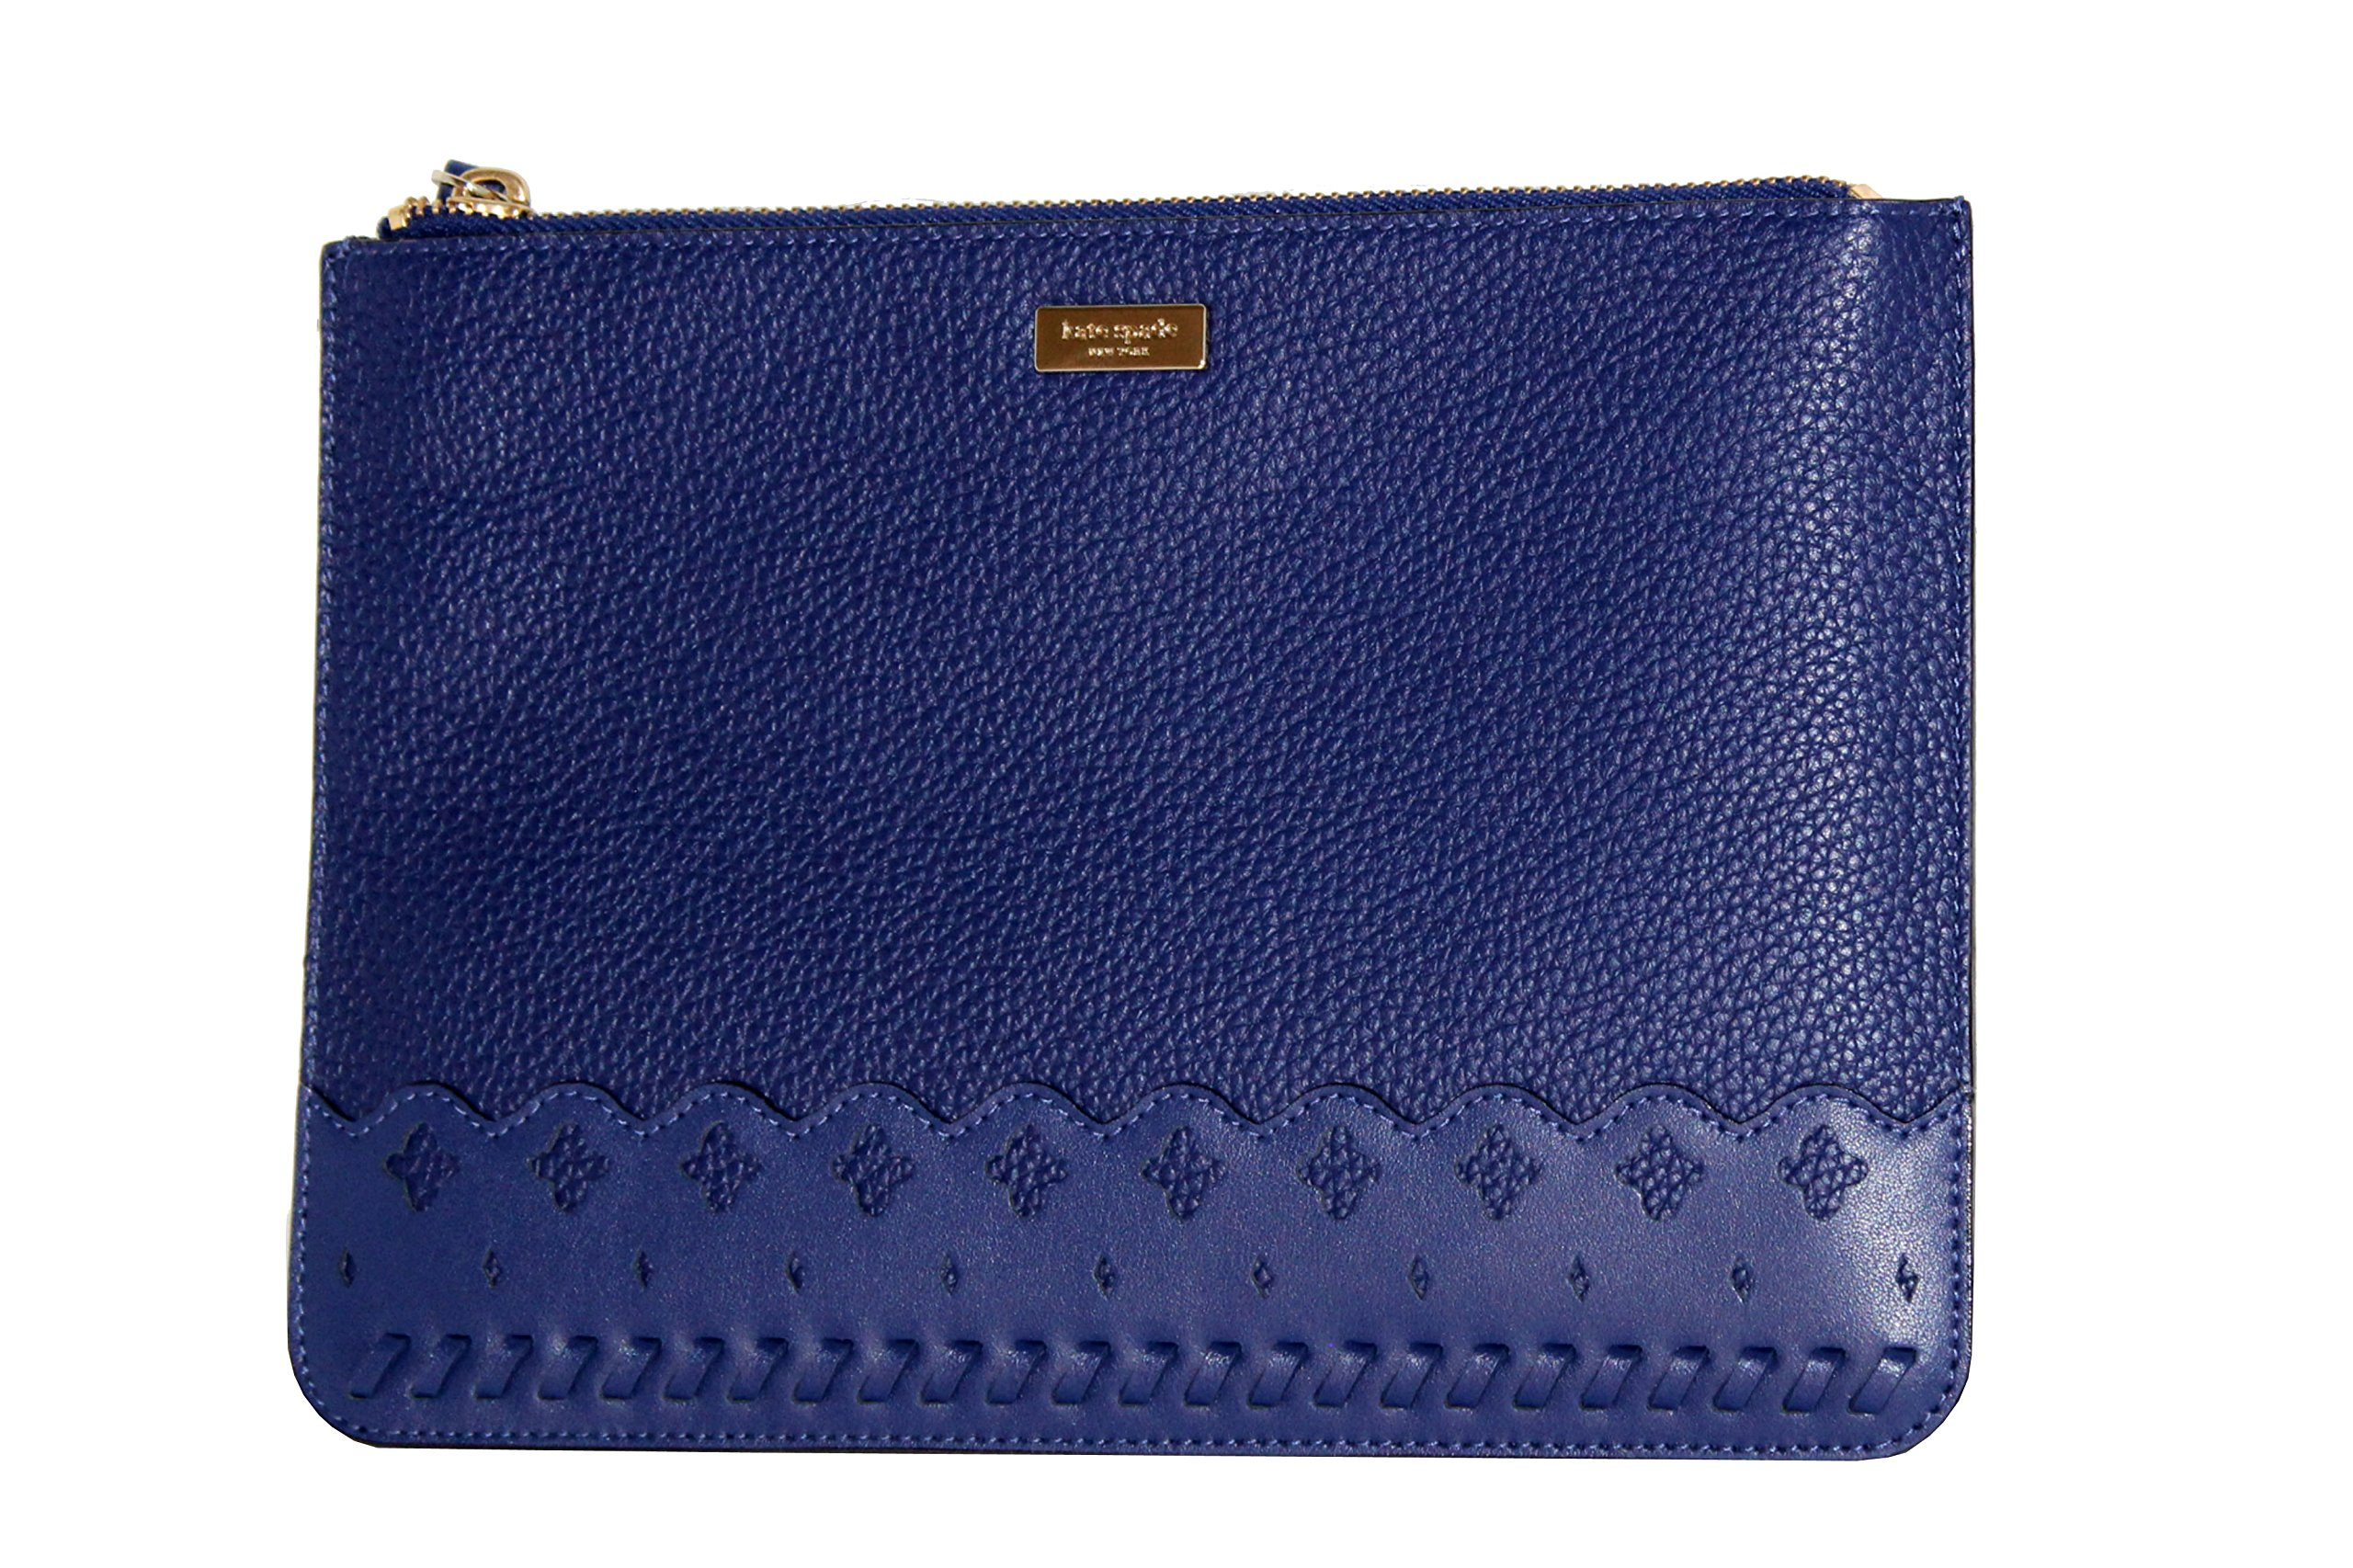 Kate Spade Marcus Street Gia Women's Leather phone card case holder Clutch (Asilah Blue)